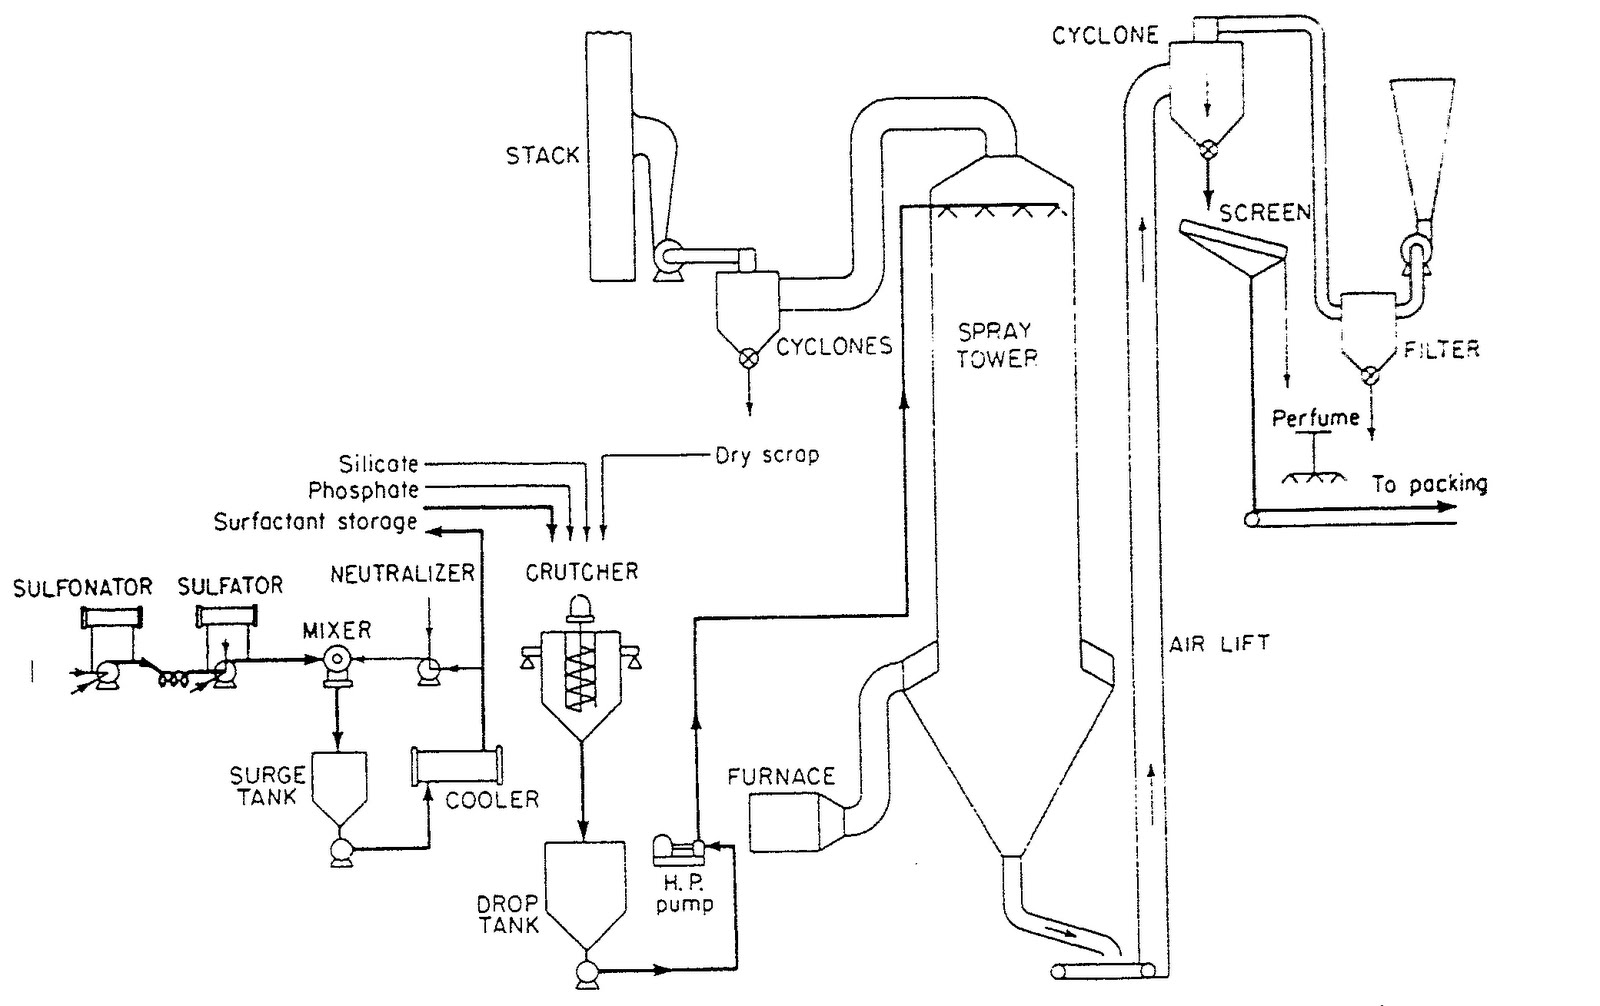 Cement Process Flow Diagram Trailer Wiring South Africa Sabs Sheets Detergent Manufacturing With